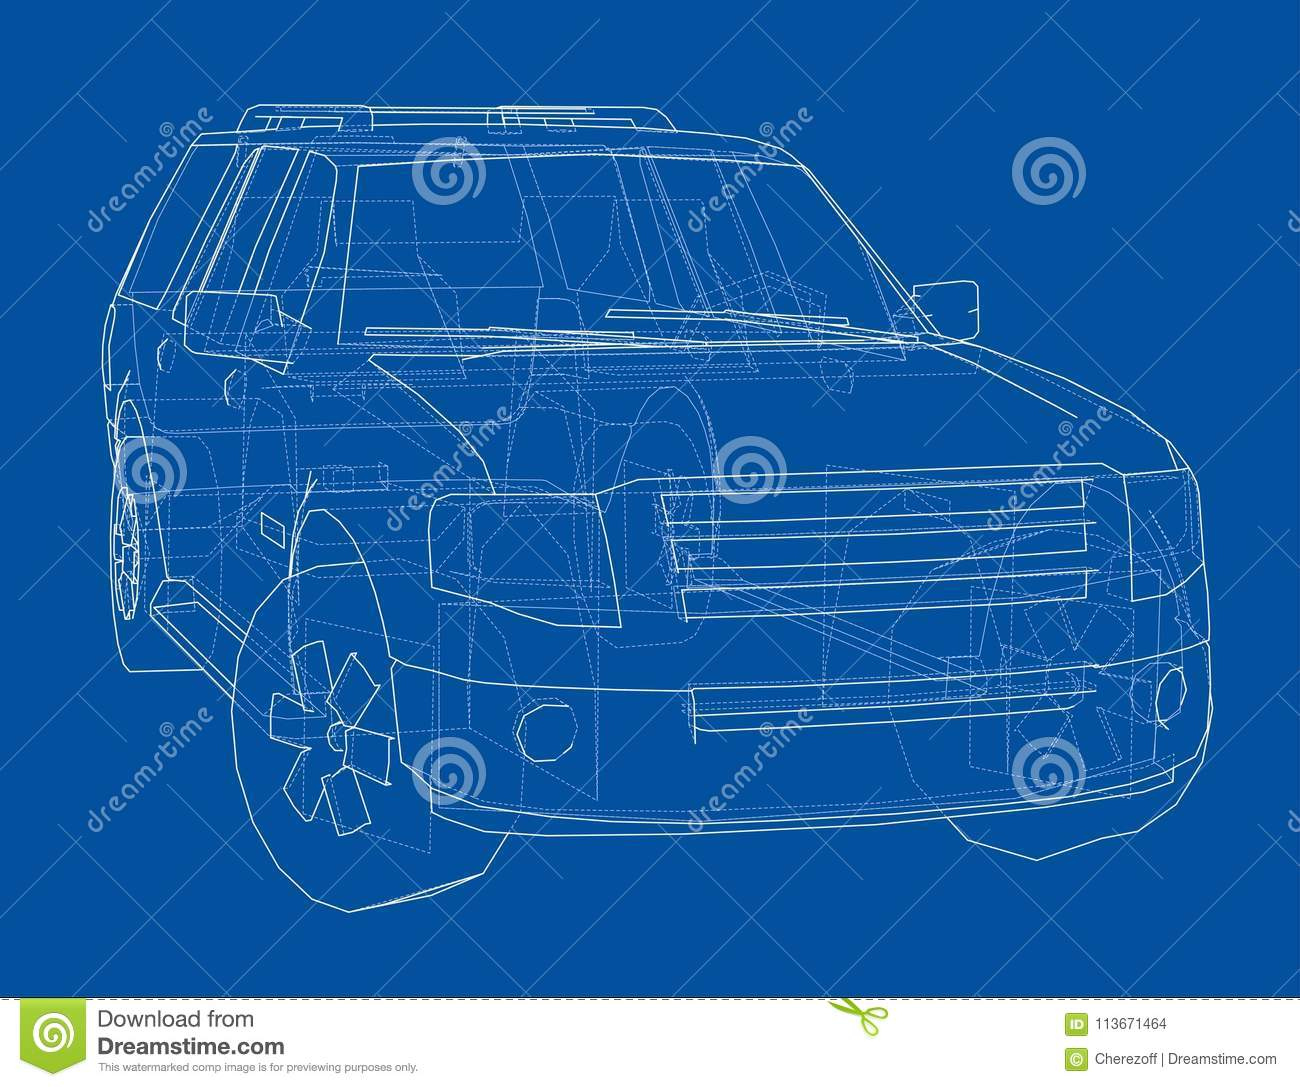 Car suv drawing outline stock illustration illustration of download car suv drawing outline stock illustration illustration of background 113671464 malvernweather Gallery